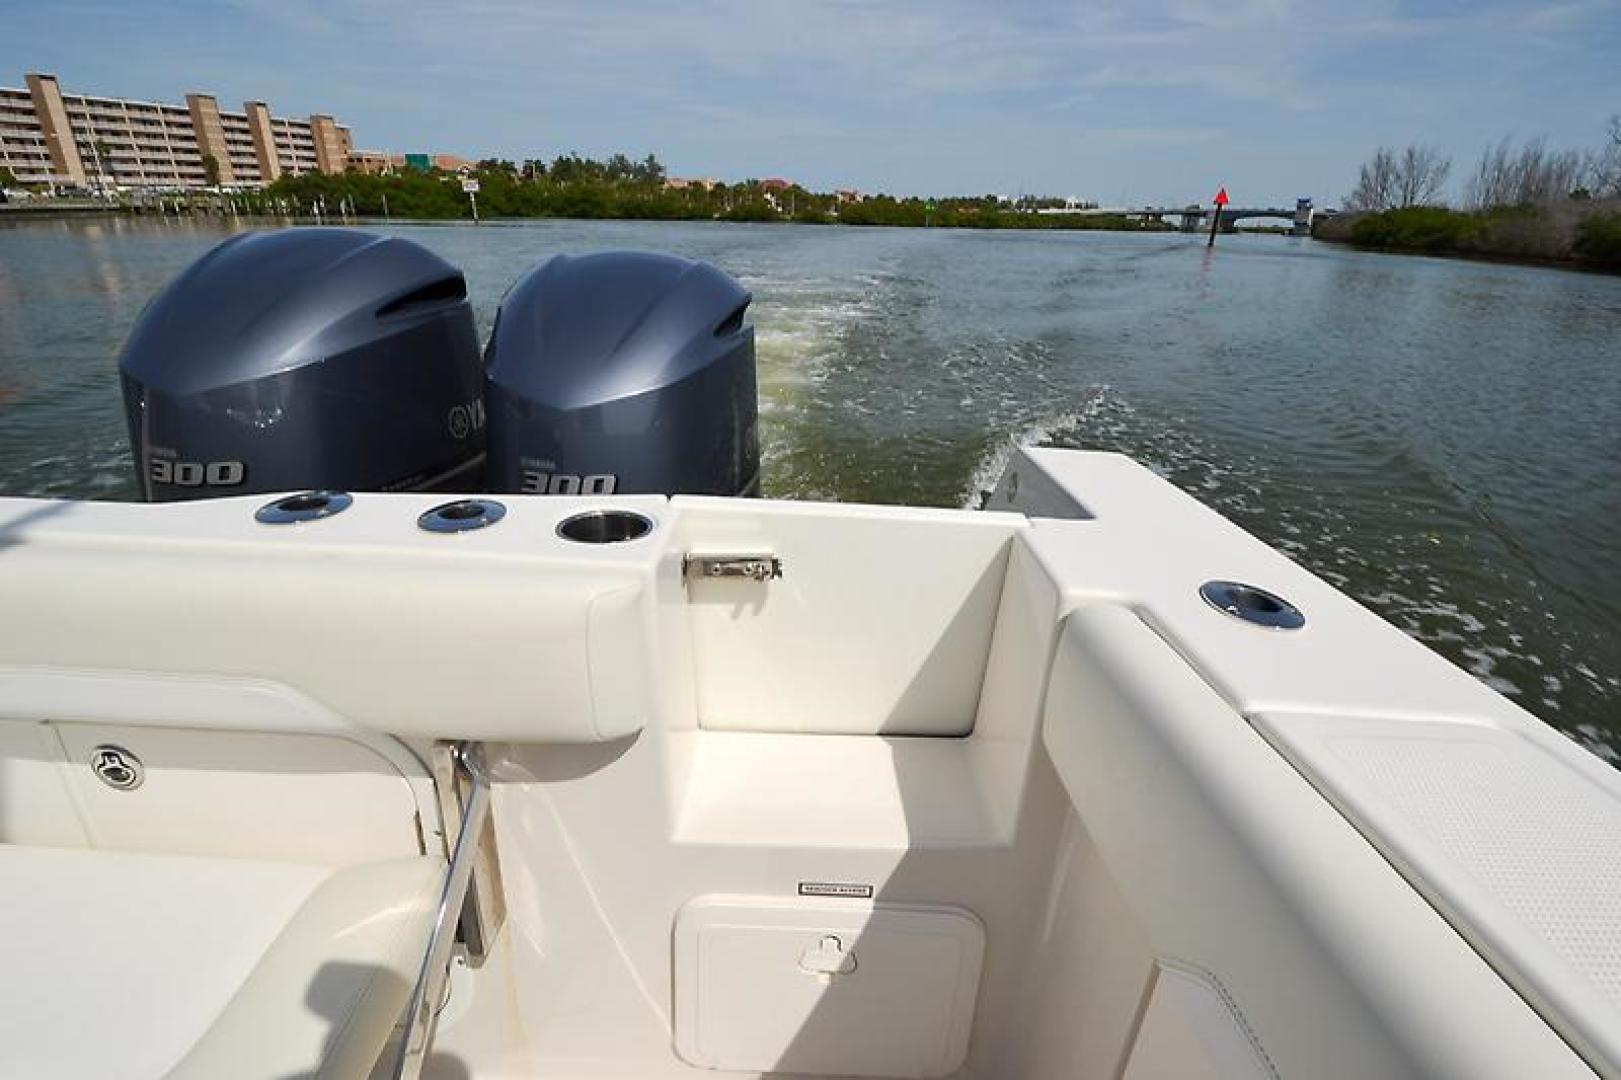 2014 Sailfish 320 cc-50.jpg